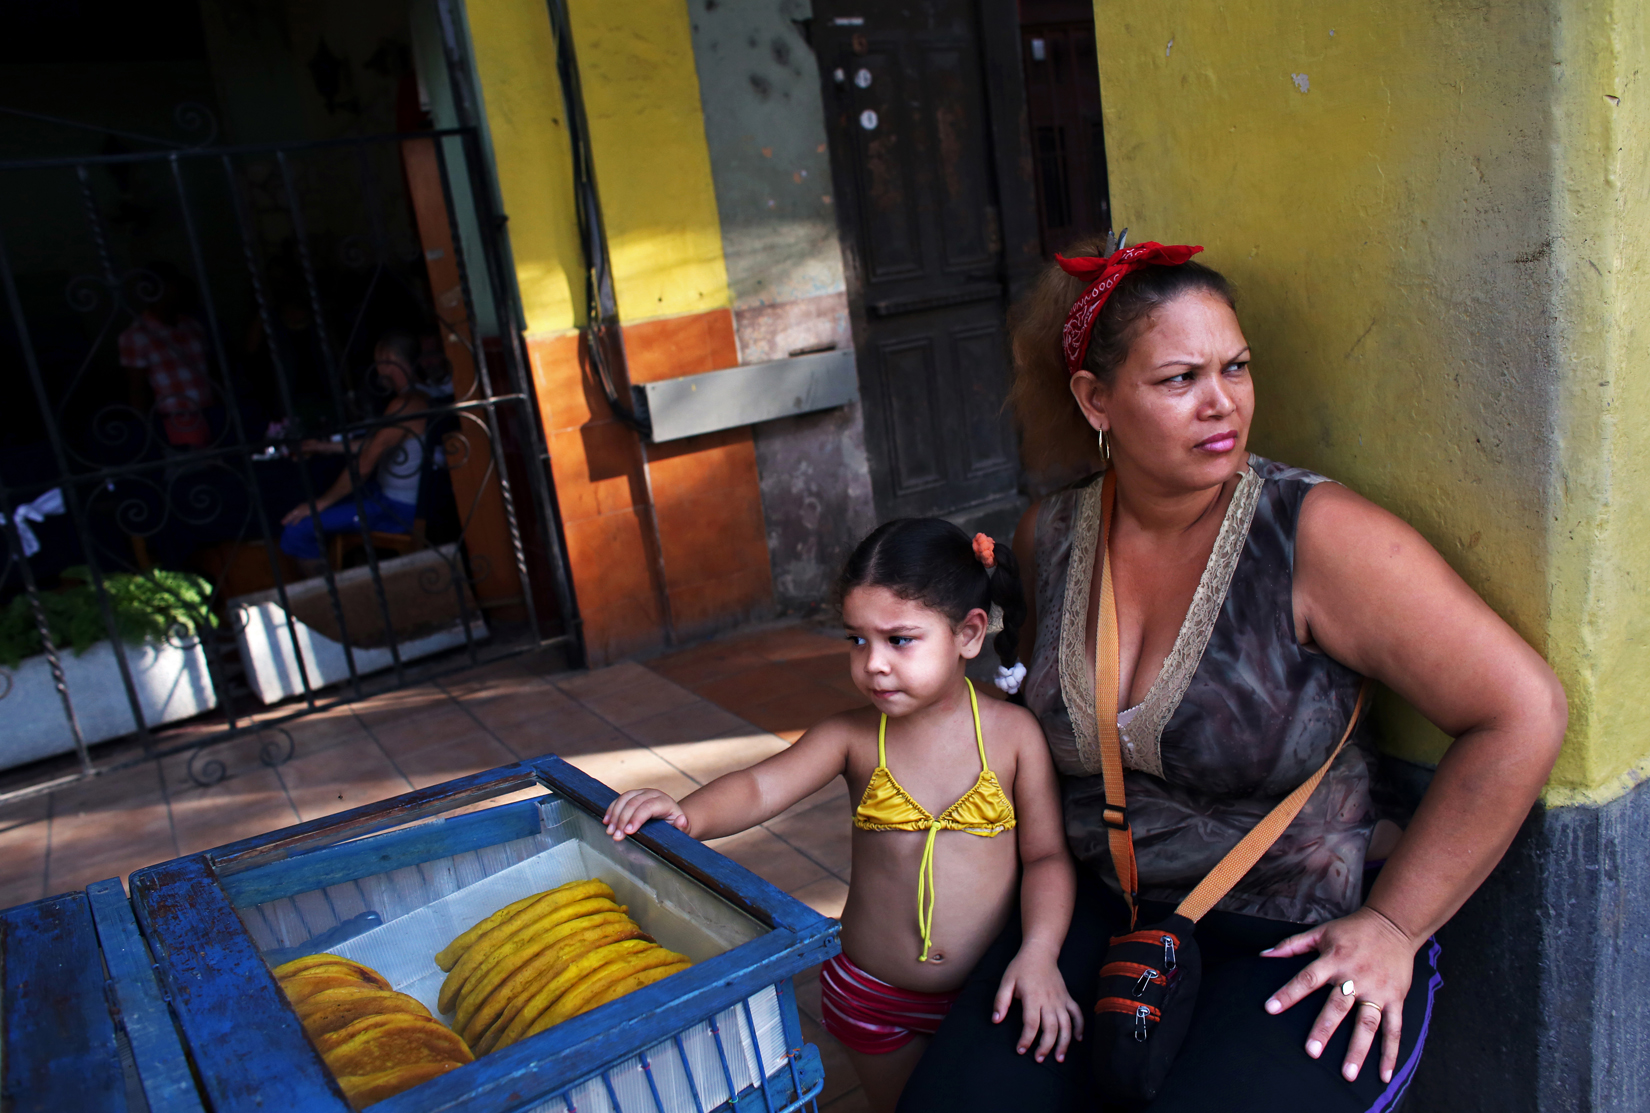 Maydelin Pérez Pérez, 38, sells empanadas with her three-year-old daughter, Lorena Sofia Reyez, in the Havana Vieja neighborhood of Havana, Cuba. Pérez is divorced, cannot afford daycare for her four children, and says her ex-husband contributes the equivalent to $1 of child support monthly. She earned less at her government job as a secretary than she does now, as one of Cuba's cuentapropistas (small business entrepreneurs, whose practice wasn't allowed in Bulgaria and most of Eastern Europe until the collapse of communism.) Since privatization was first allowed within Cuba's state-owned socialist system in the mid-70s, the requirements for those allowed to be cuentapropistas have fluctuated from restrictive to less so - the latter in the Raúl Castro era of 2008 and beyond. But a clear disincentive to private business expansion remains, however: if payroll surpasses 5 employees or a $2,000 yearly profit, taxes increase disproportionately (from 15% to 50% in case of the latter.)